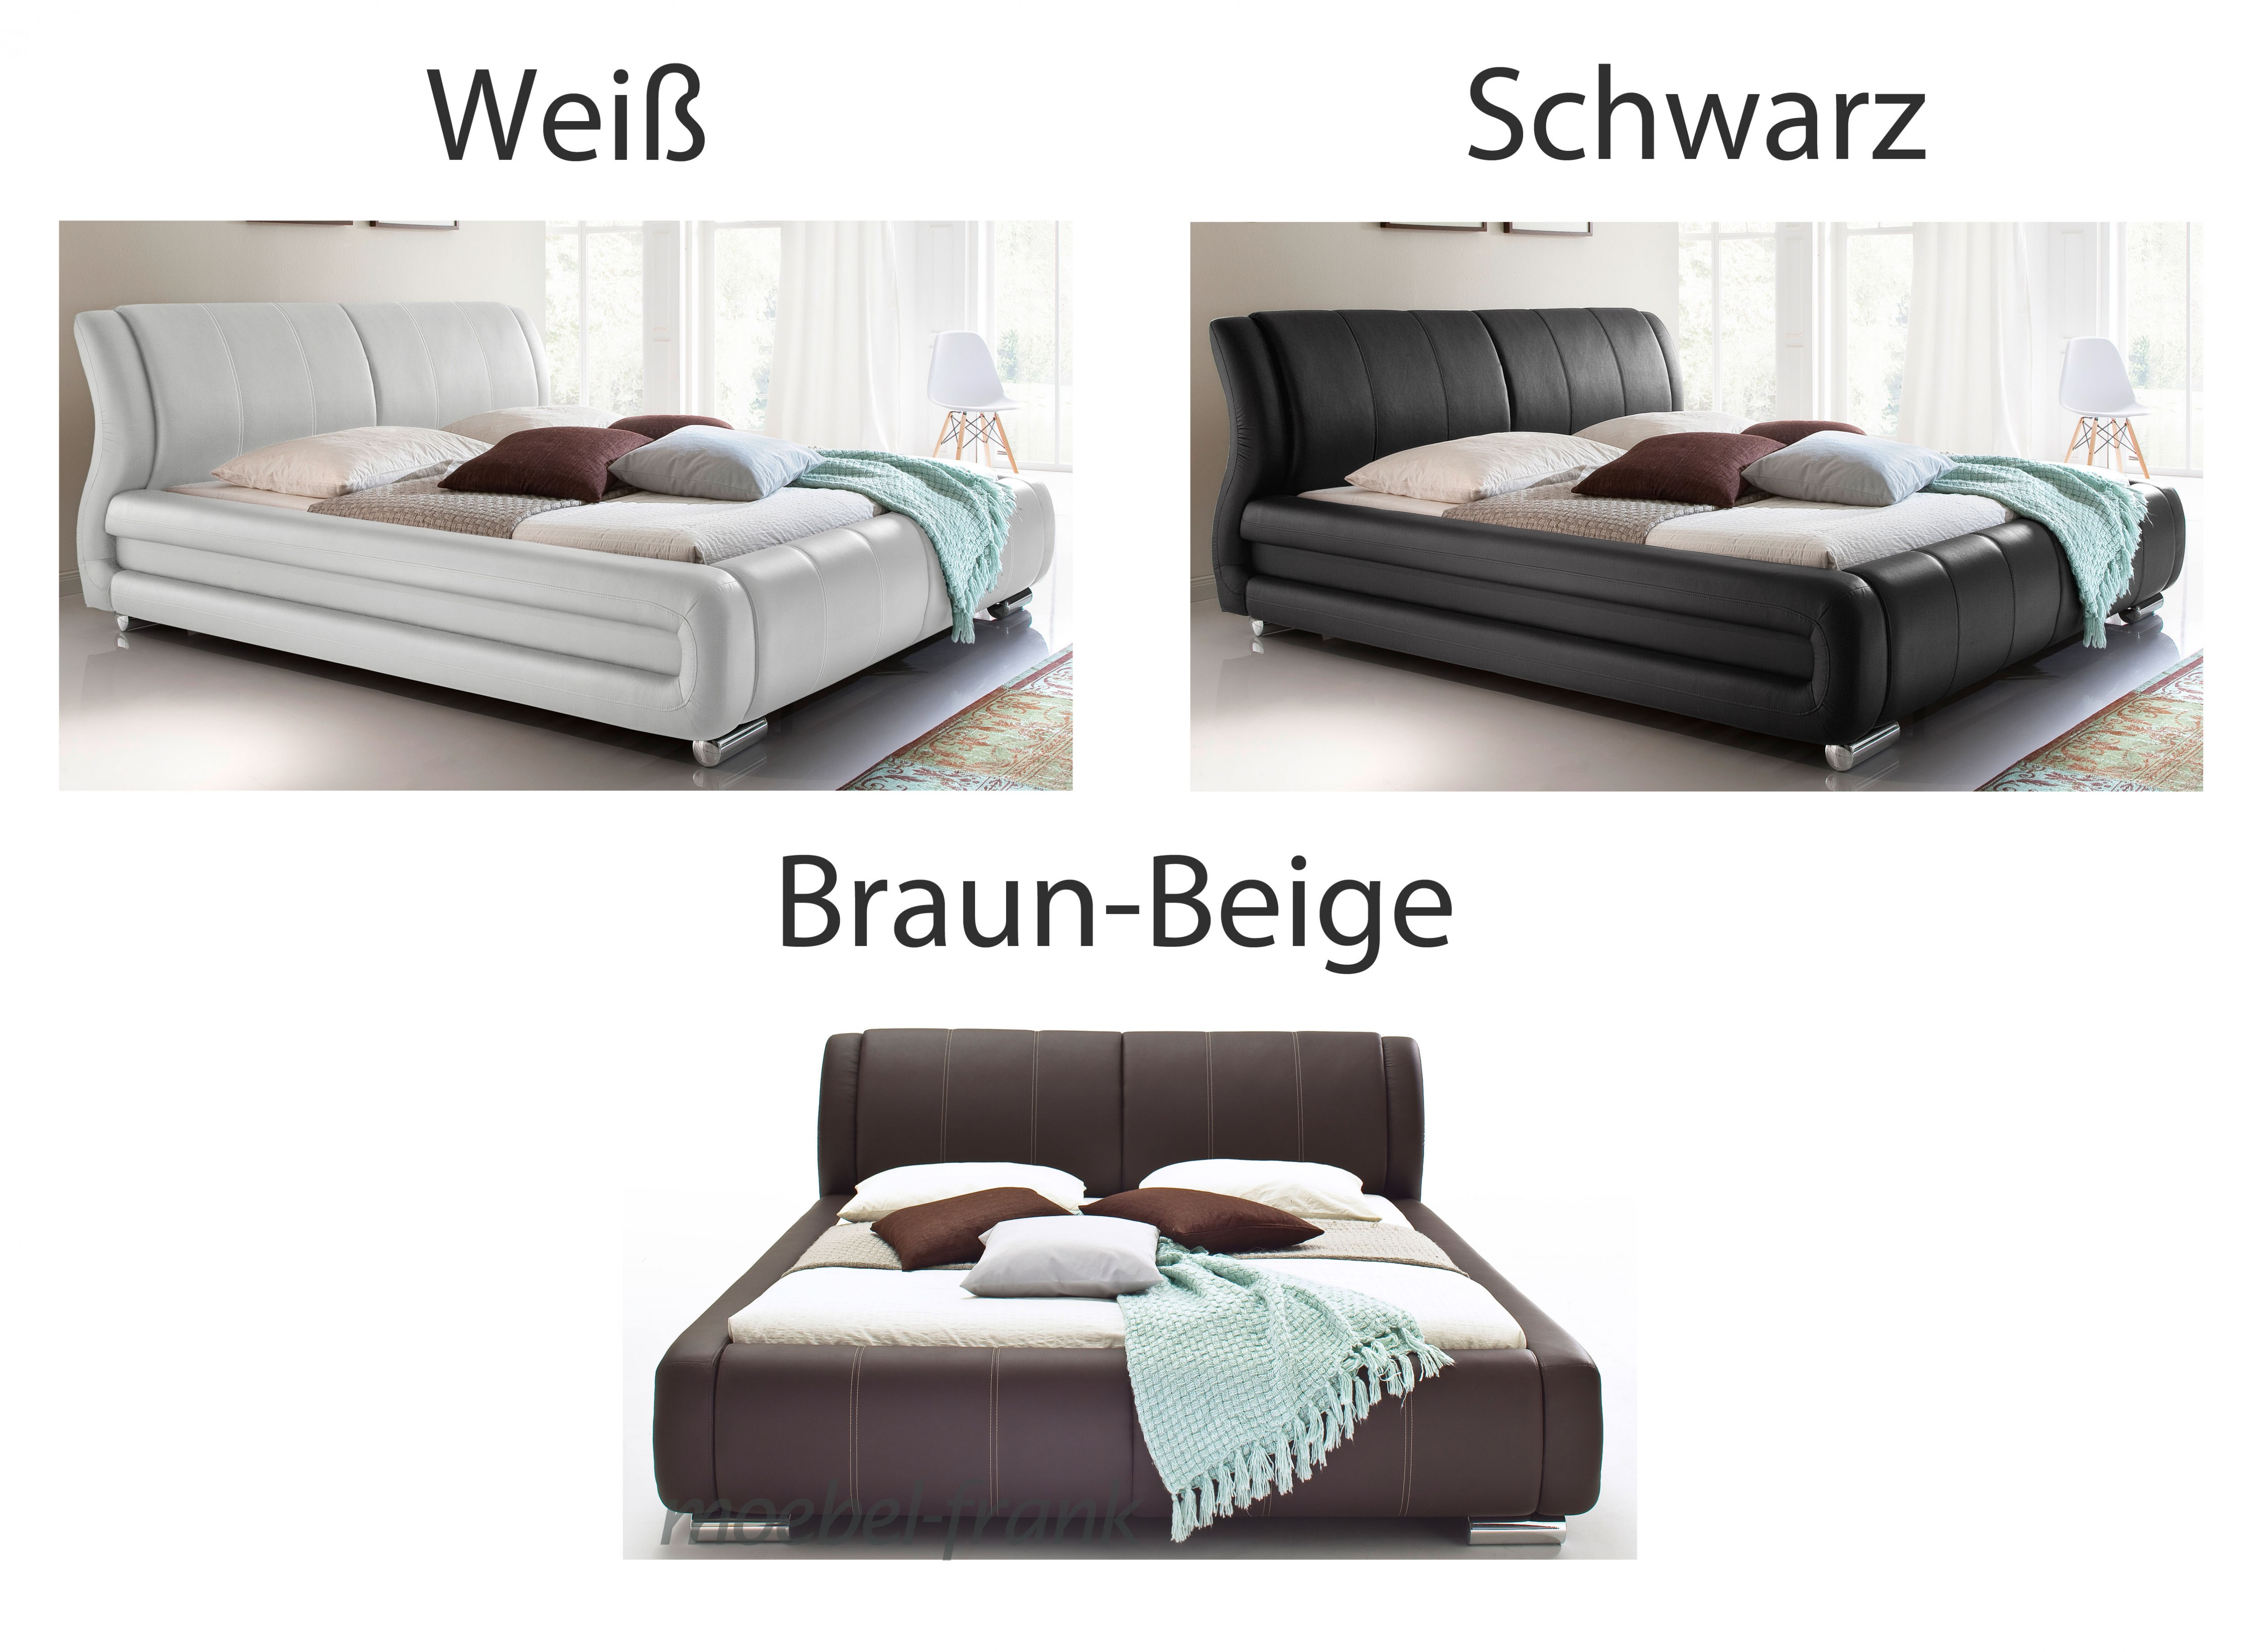 polsterbett kunstlederbett braunbeige komforth he doppelbett bettgestell bastian ebay. Black Bedroom Furniture Sets. Home Design Ideas